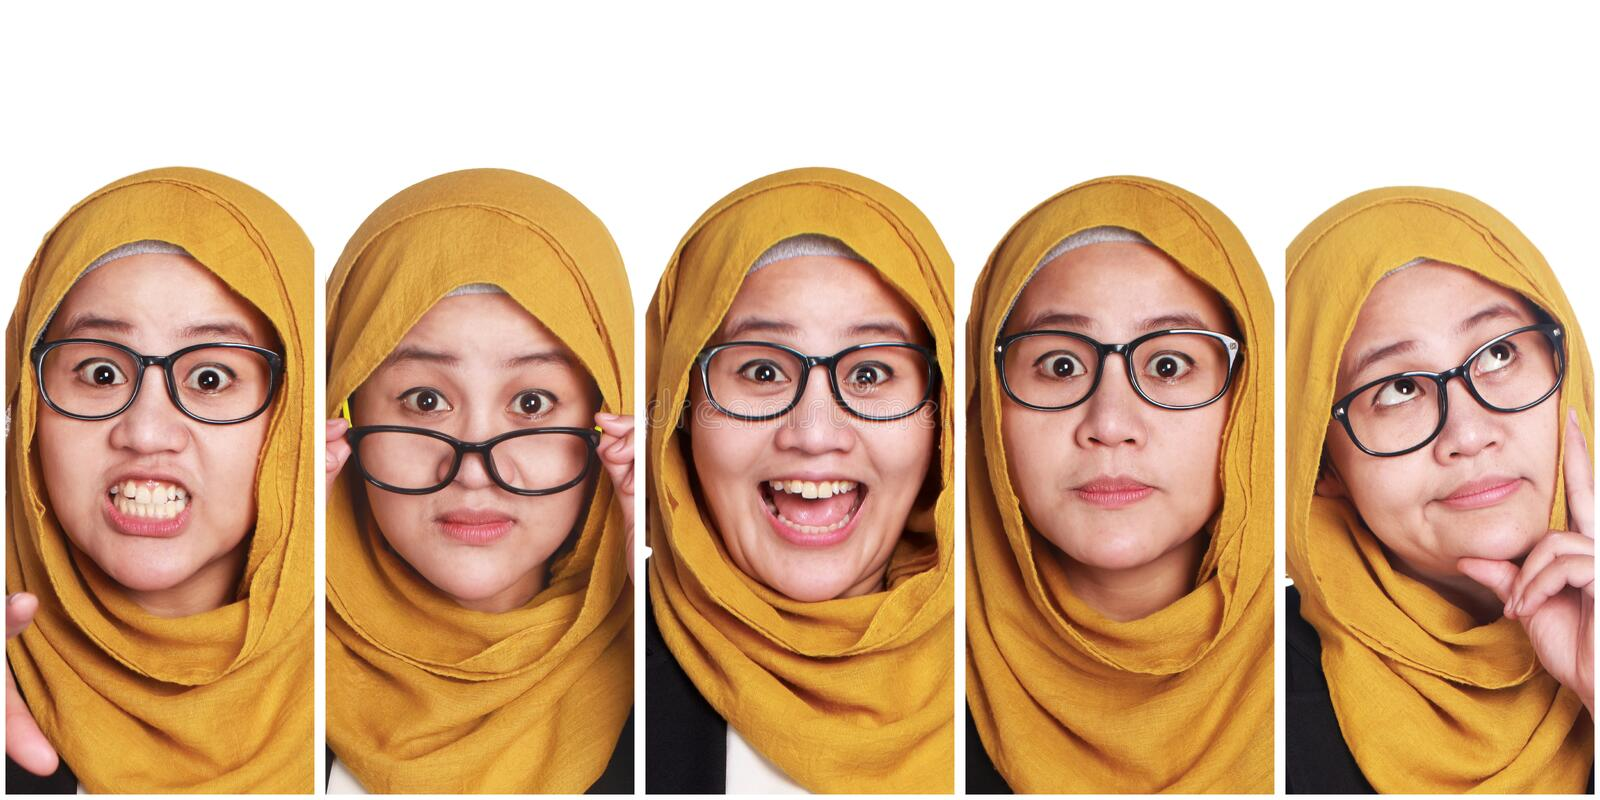 Muslim Woman& x27;s Facial Expressions Collage stock image